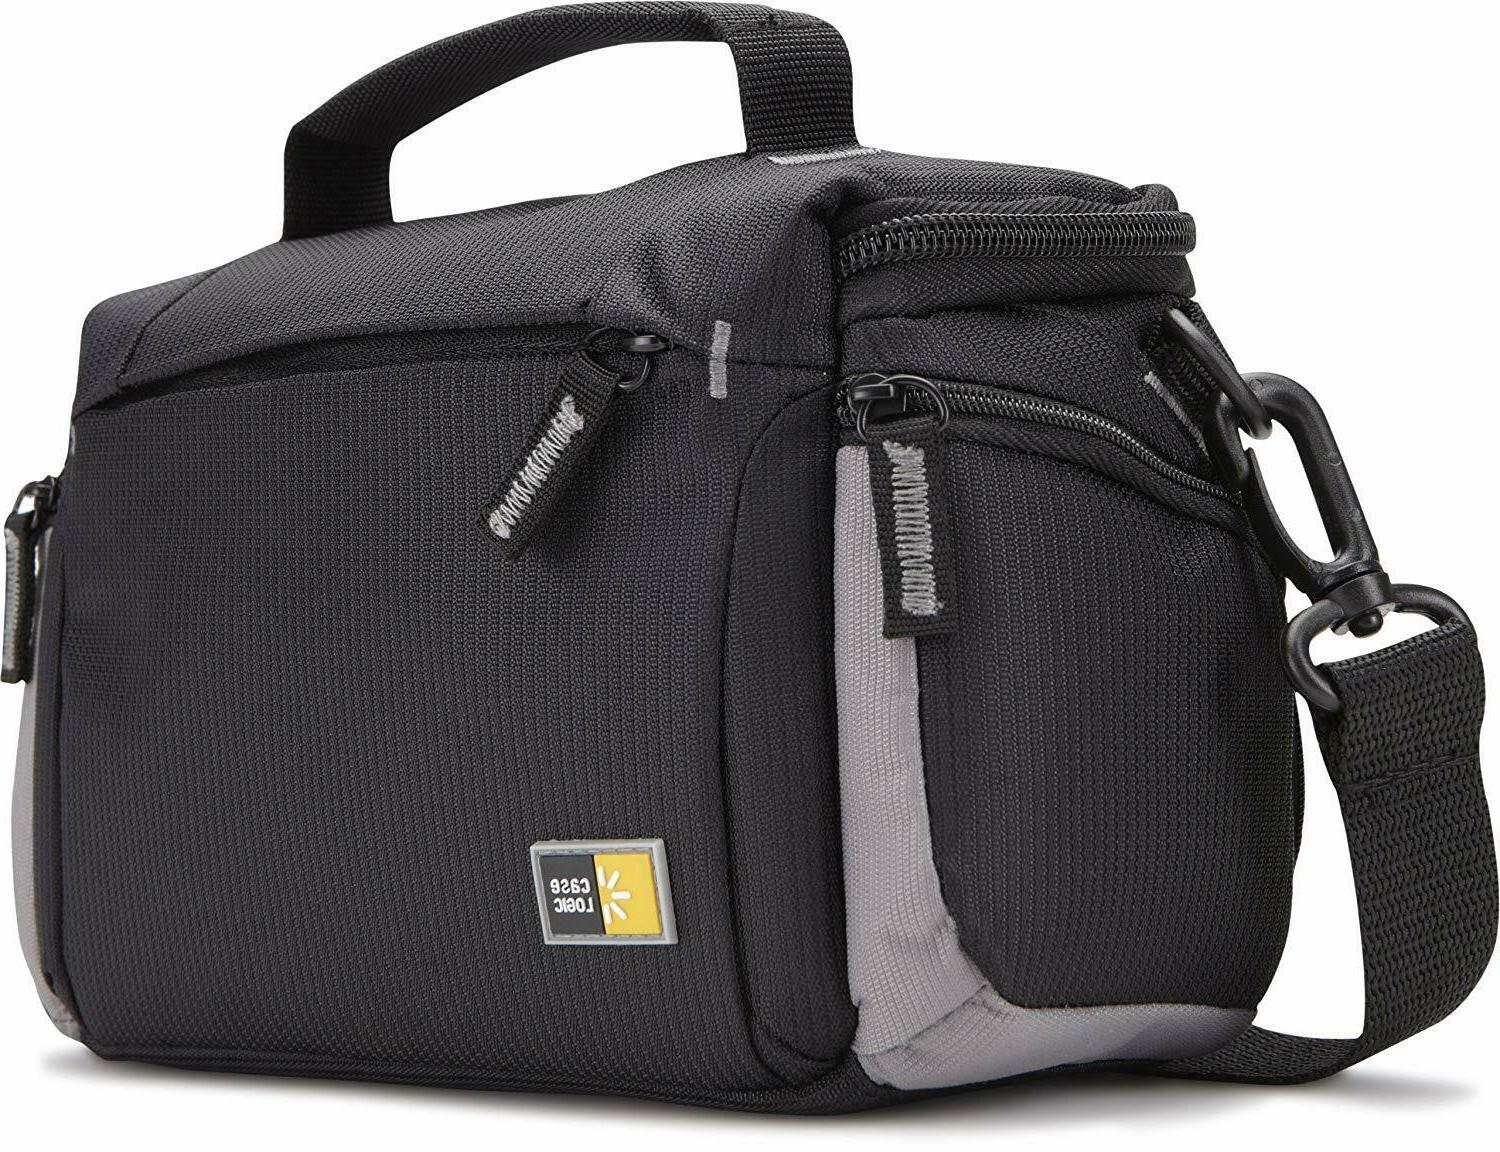 camcorder bag tbc 305 black